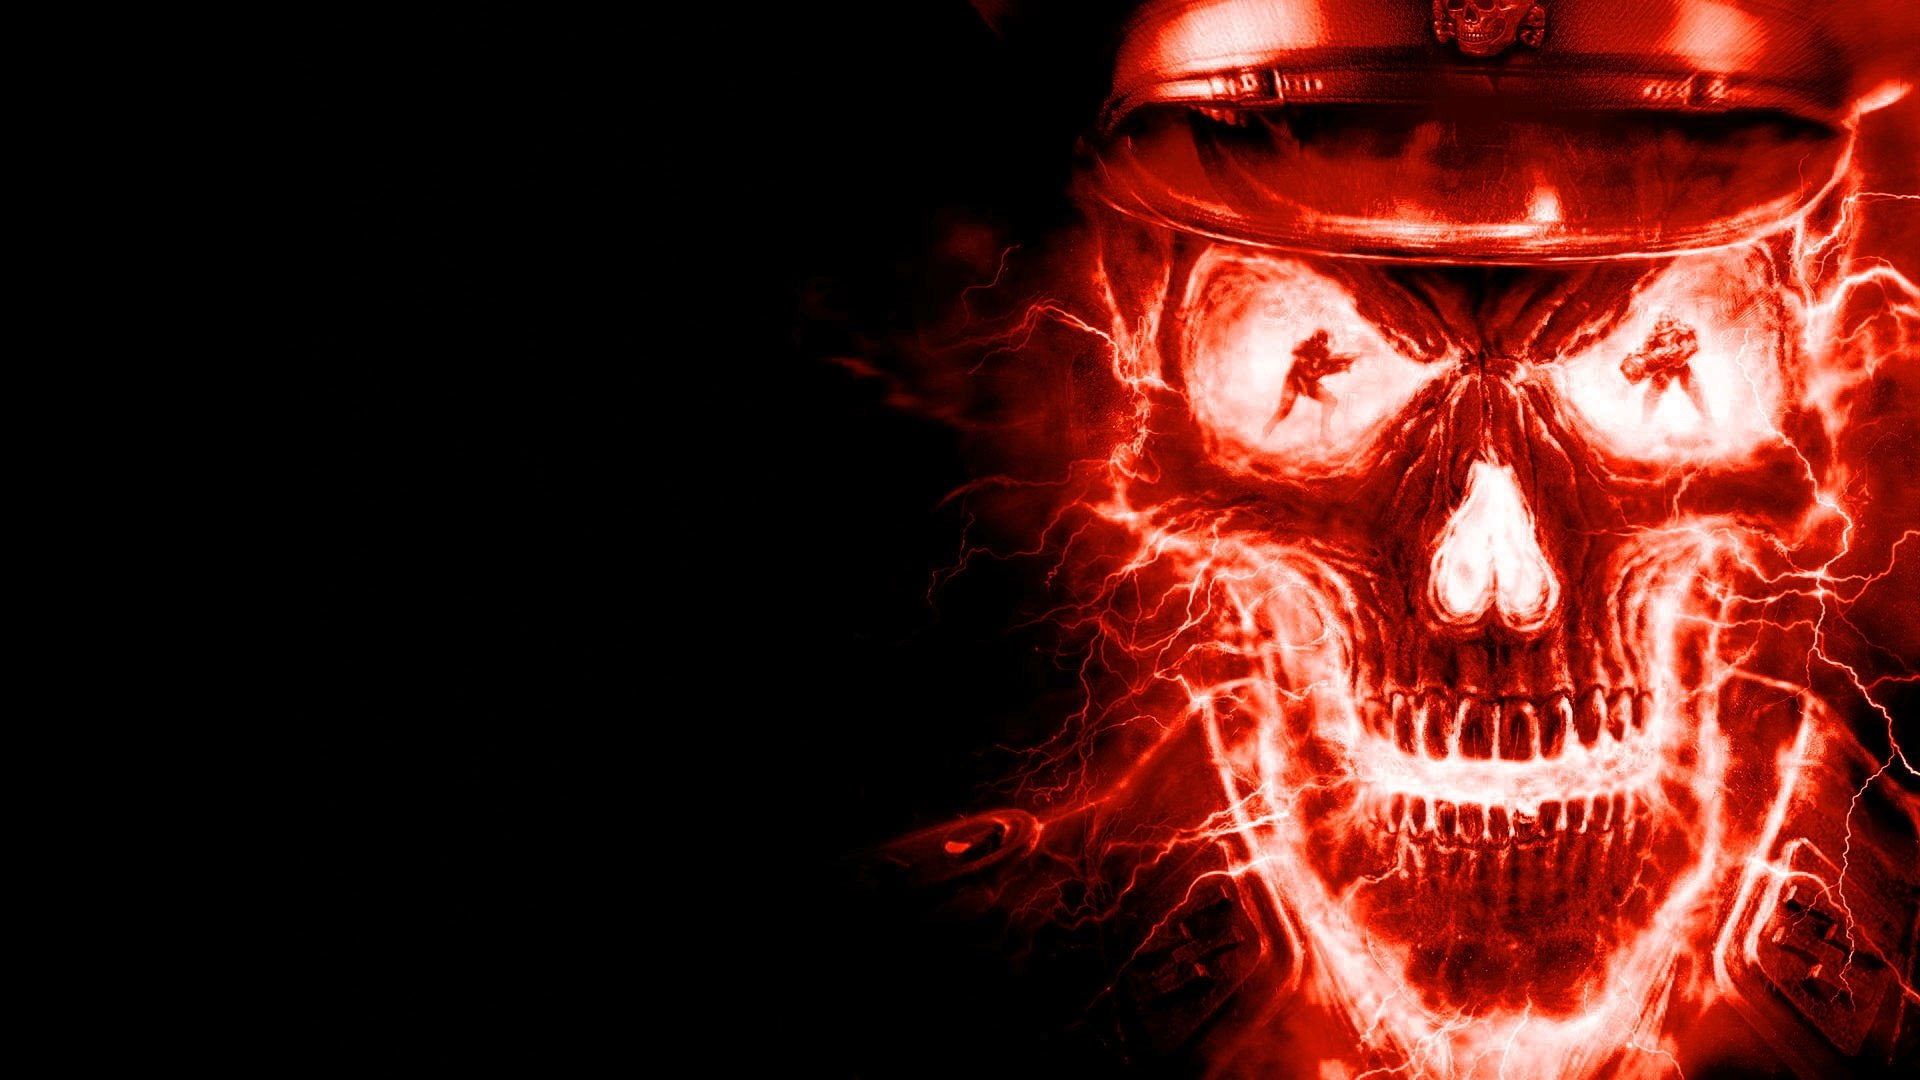 Fire-Skull-Free-Download-High-1920x1080PX-Music-Skull-wallpaper-wp3605574-1